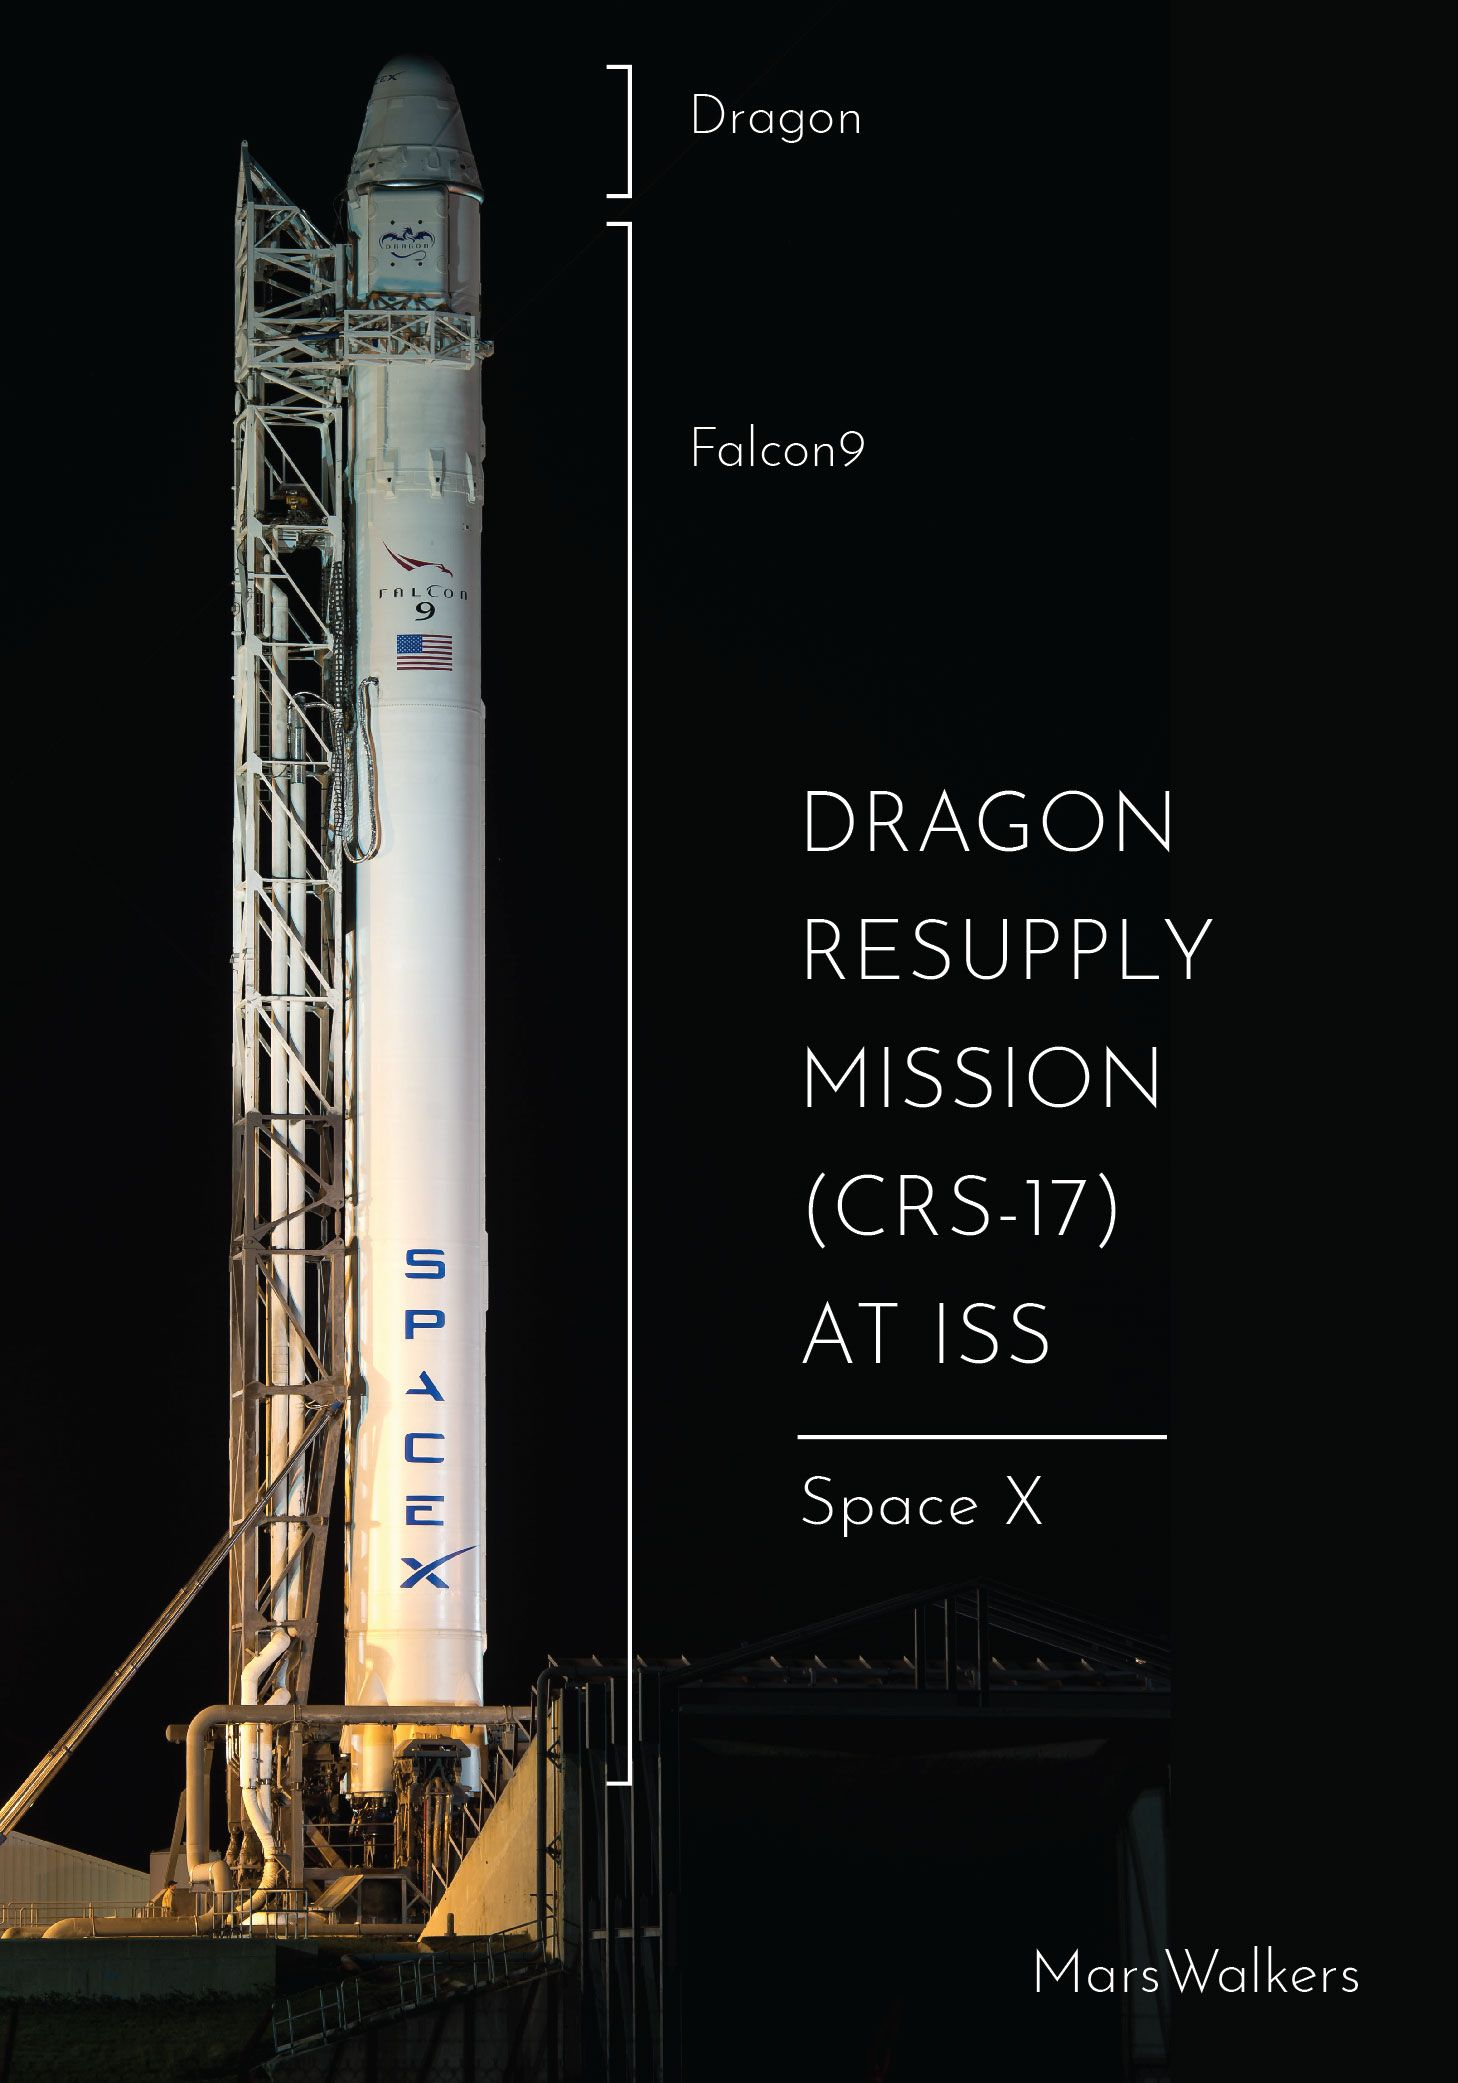 DRAGON ARRIVES AT INTERNATIONAL SPACE STATION Mission Spacex 1458x2083